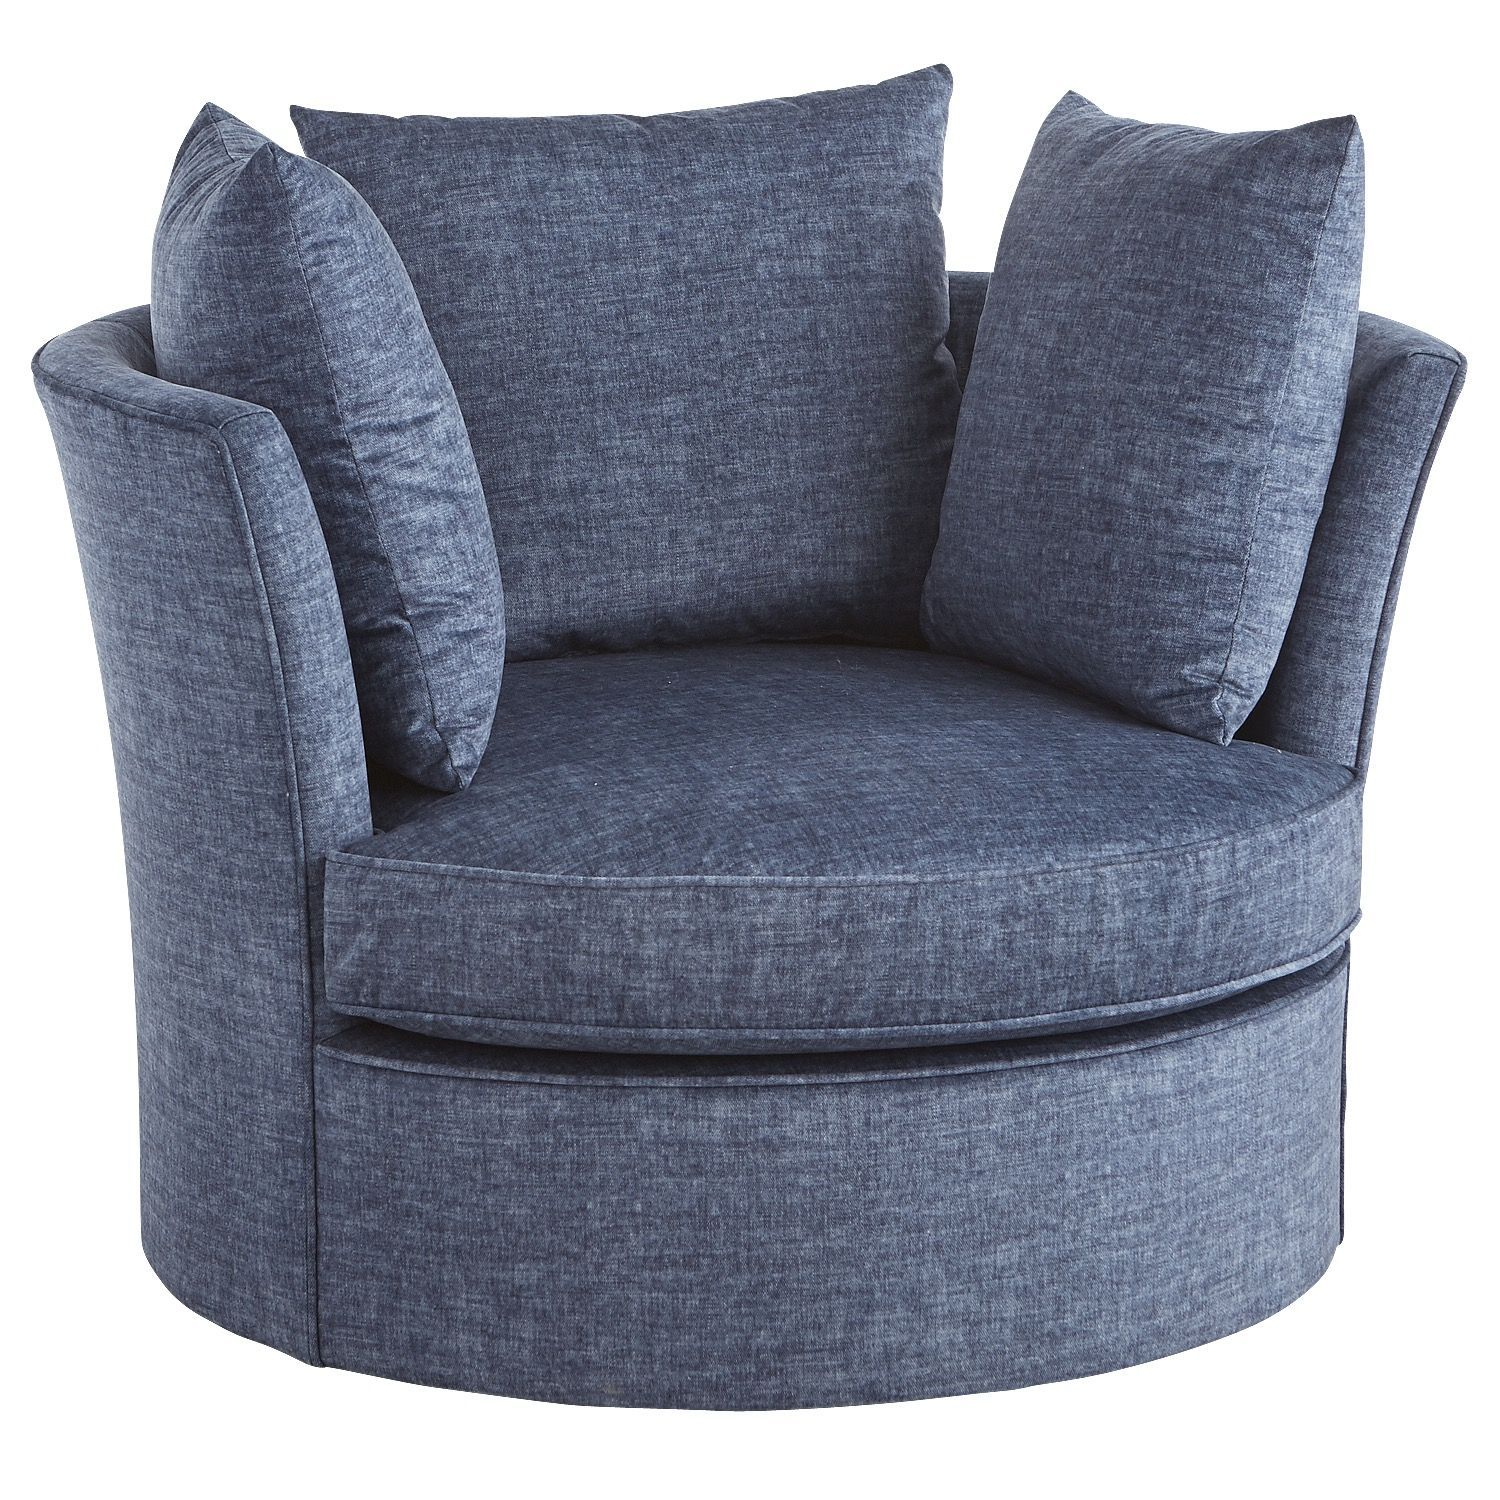 Ike Navy Blue Oversized Swivel Chair | Products | Pinterest | Chair Inside Harbor Grey Swivel Accent Chairs (Image 13 of 20)